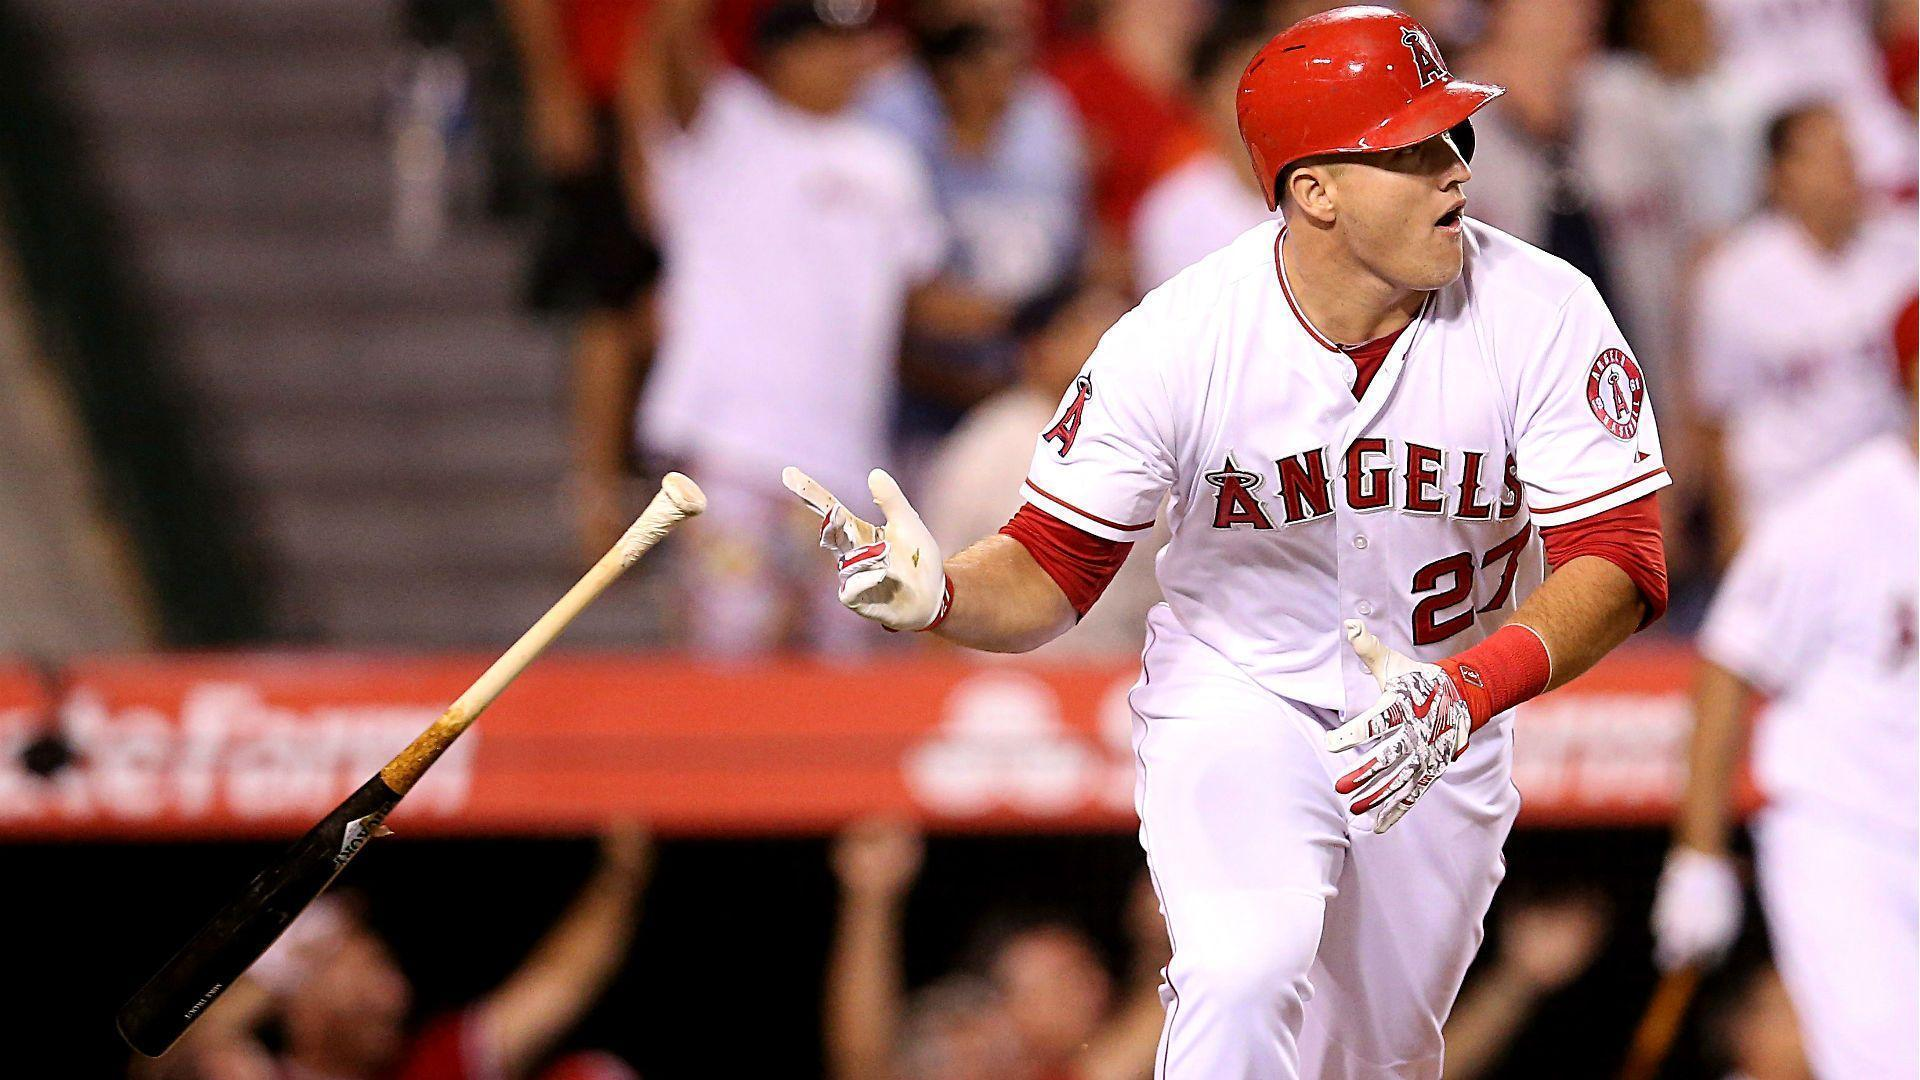 Mike Trout 2017 Wallpapers Wallpaper Cave